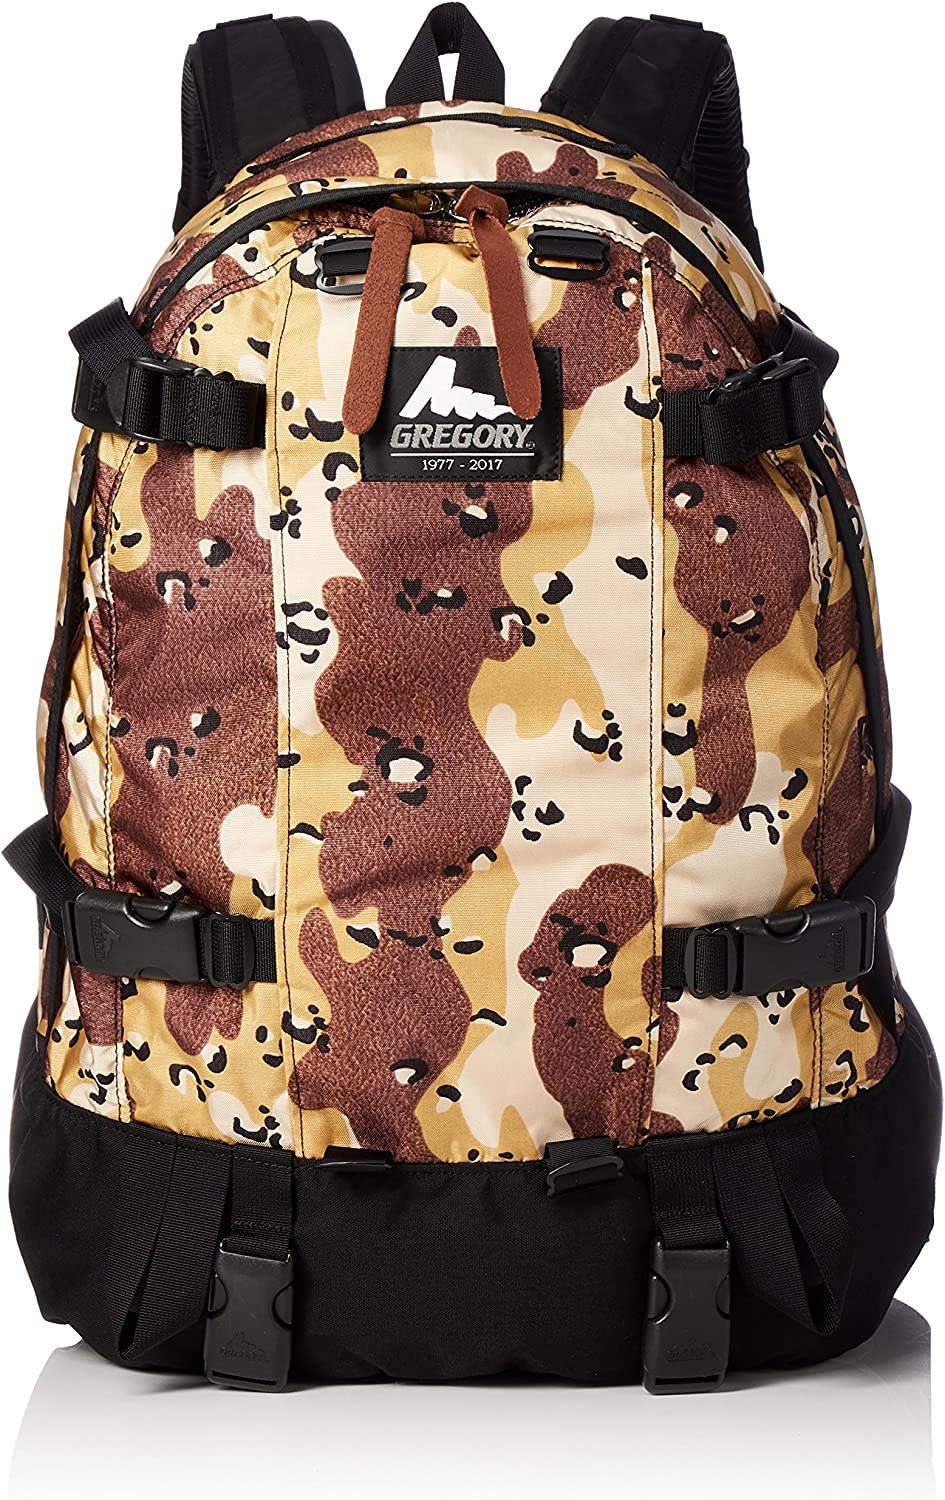 Day/&Half Silver Tag Backpack Daypack Chocolate chip Official 40th Anniversary Model Pack Gregory